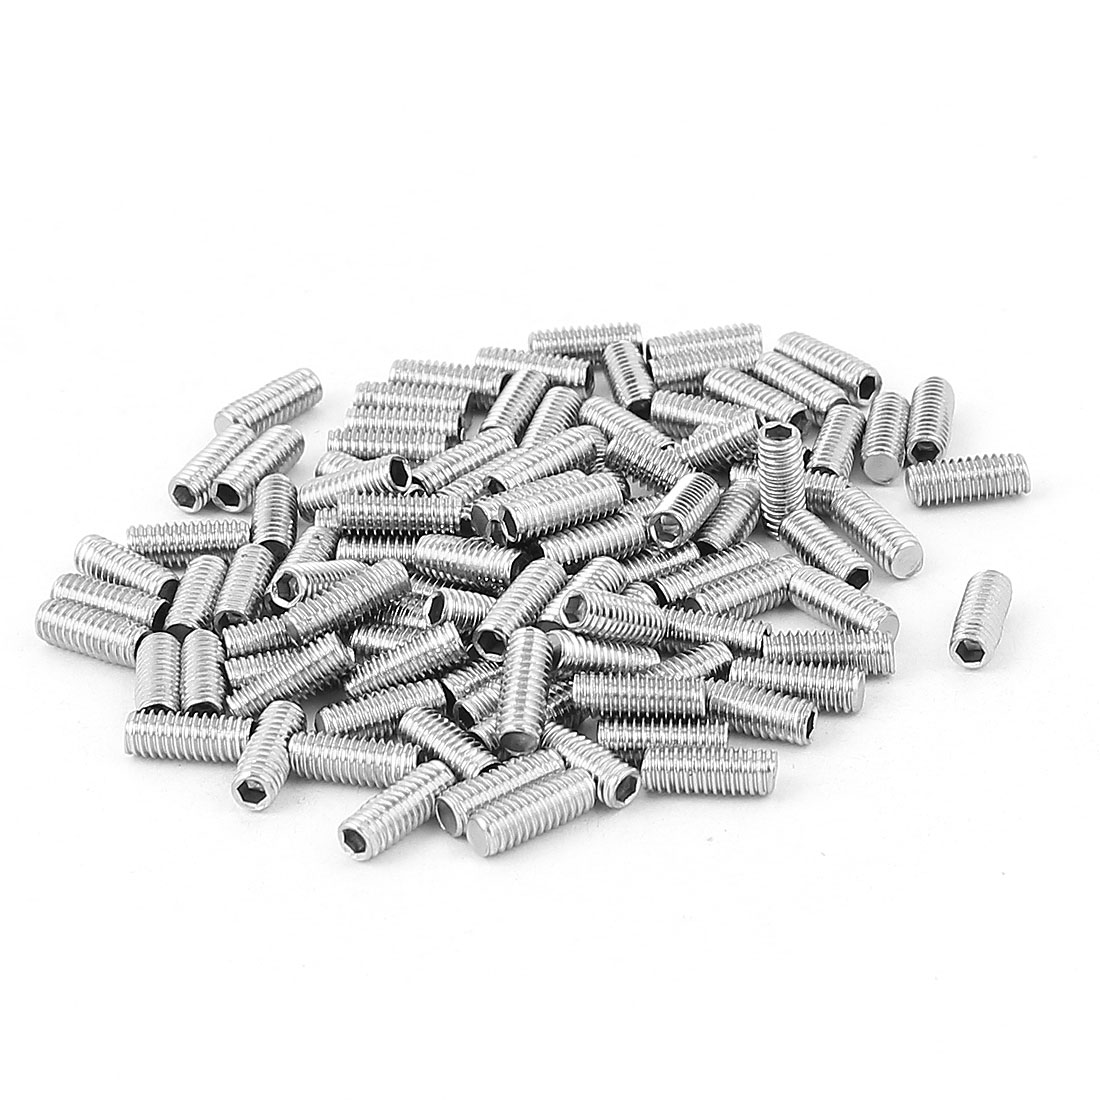 100pcs Stainless Steel M4x10mm Hexagon Socket Set Grub Screws